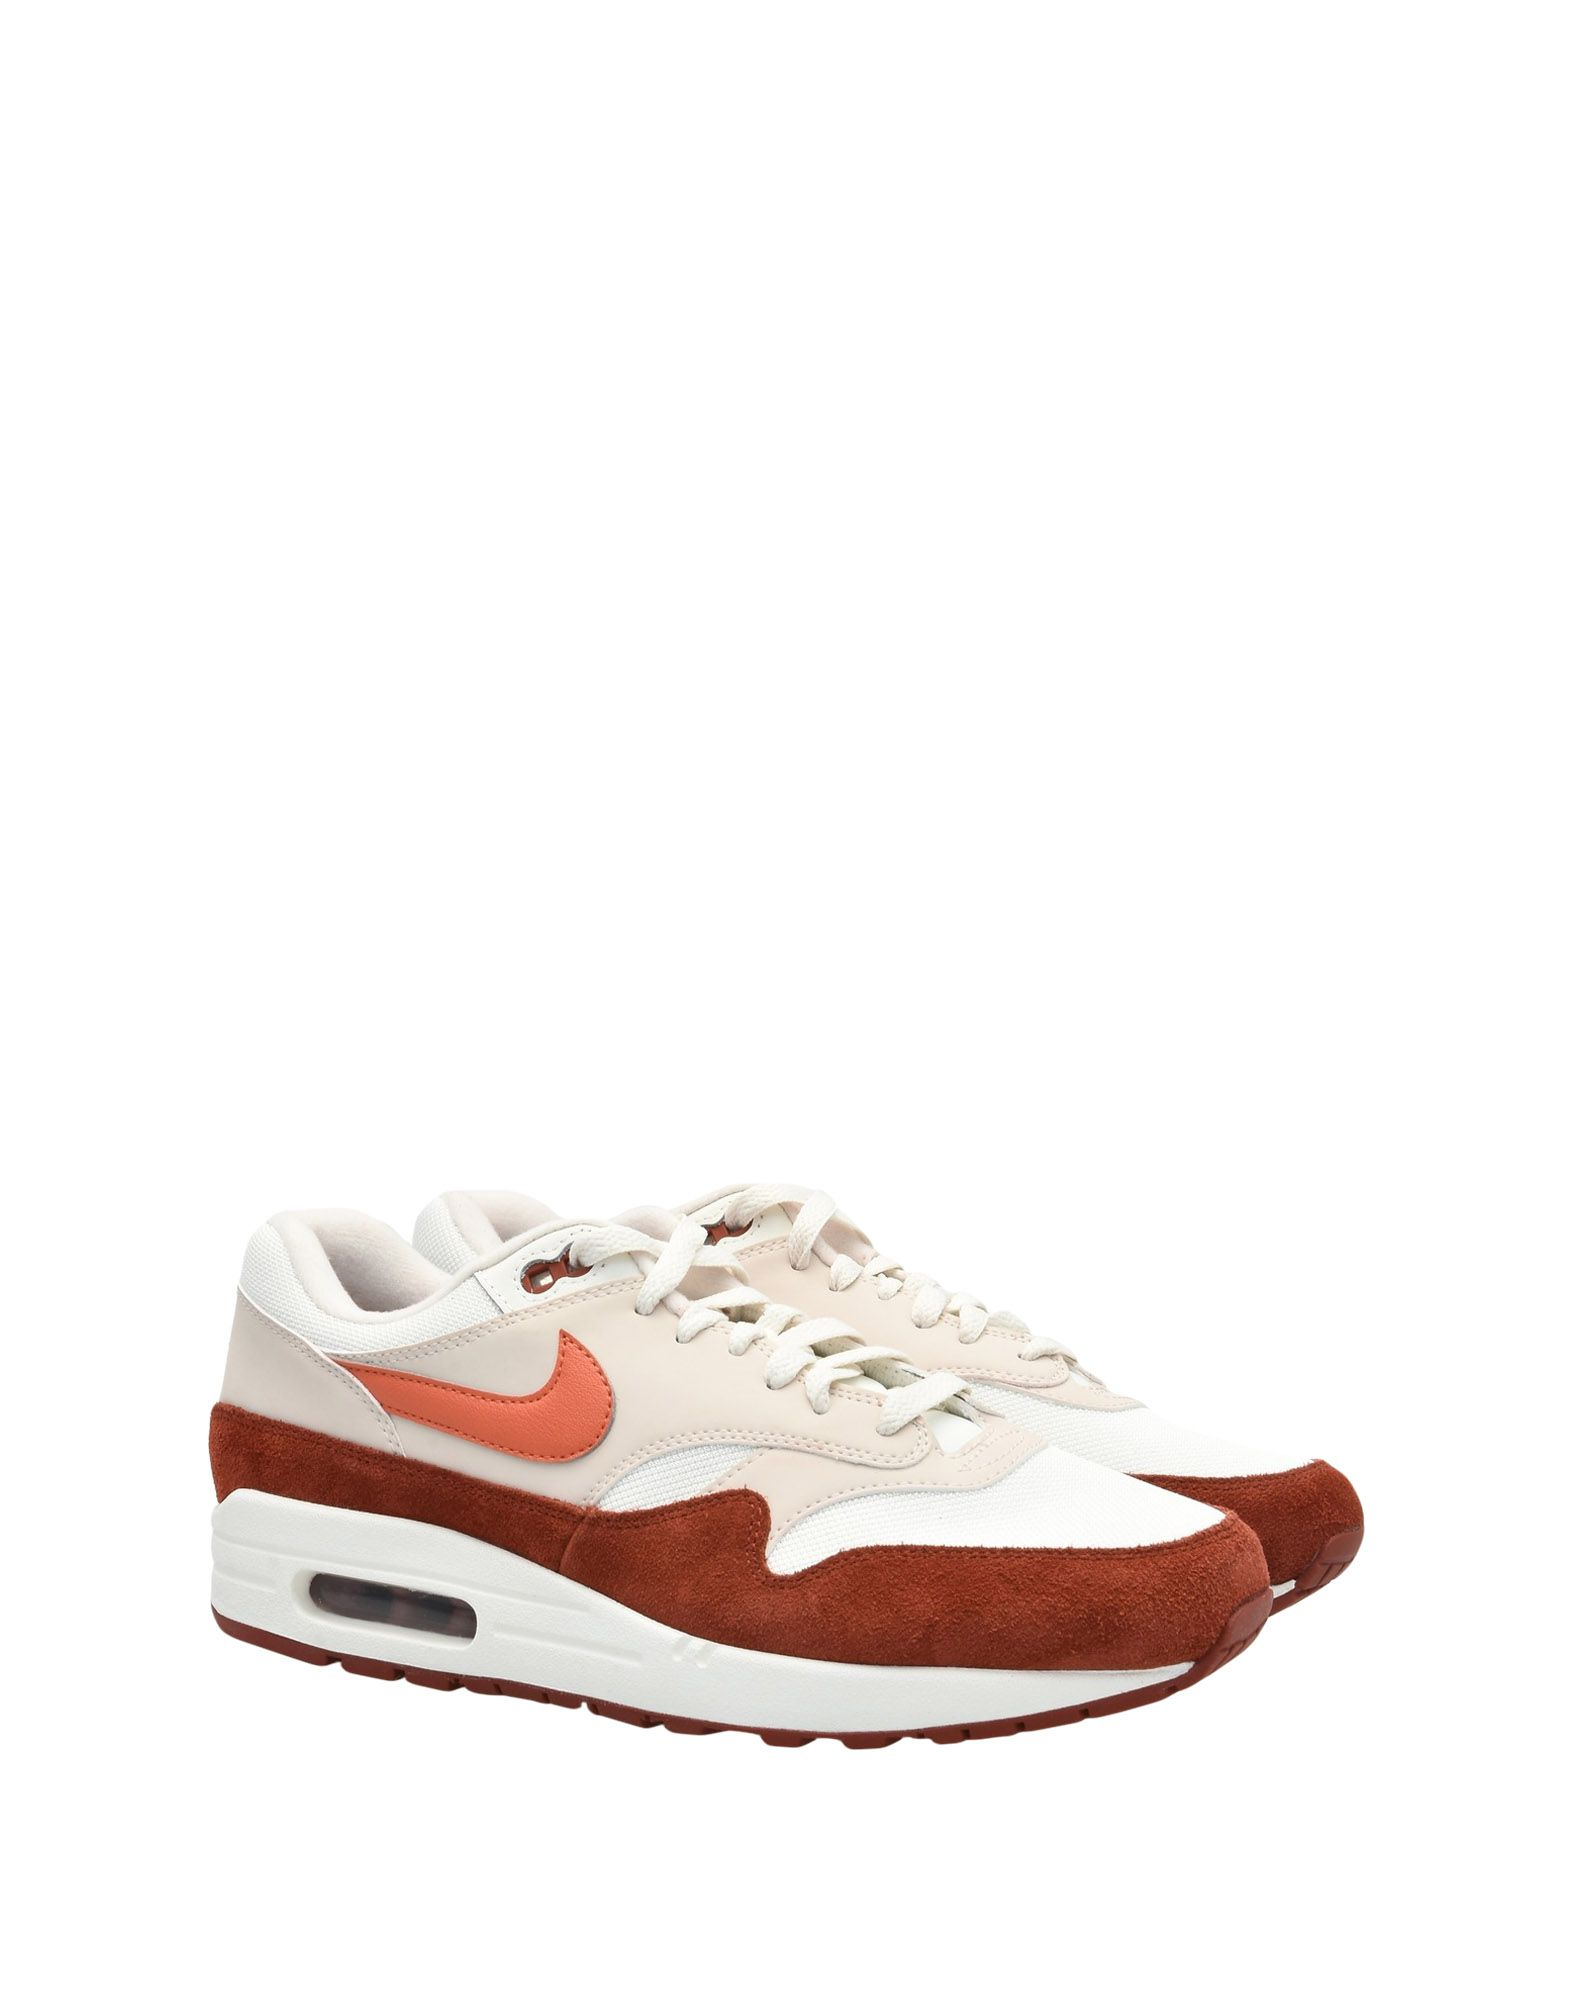 Sneakers Nike  Air Max 1 - Uomo - 11497434UU